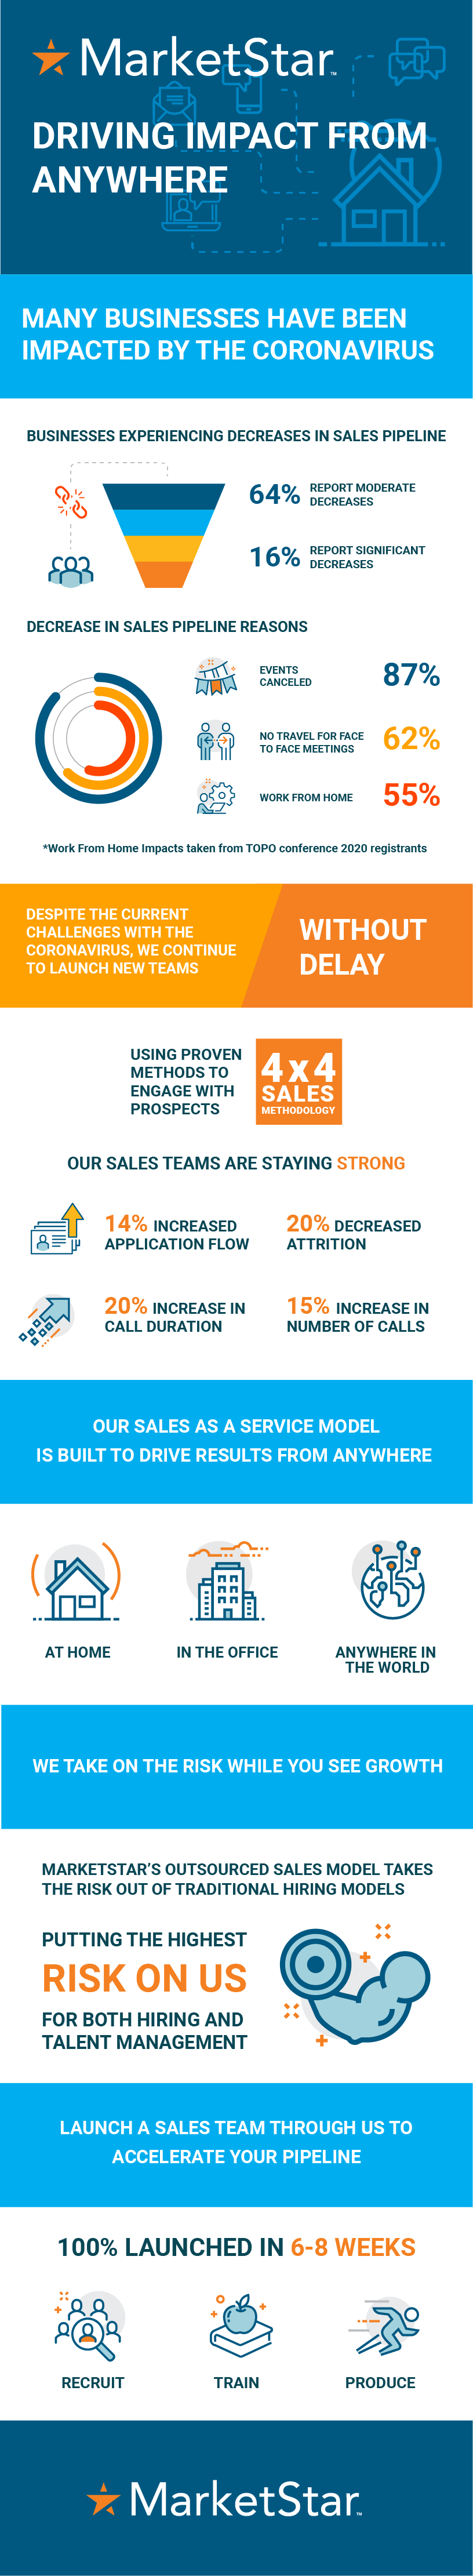 [Infographic] Driving Impact from Anywhere During COVID-19